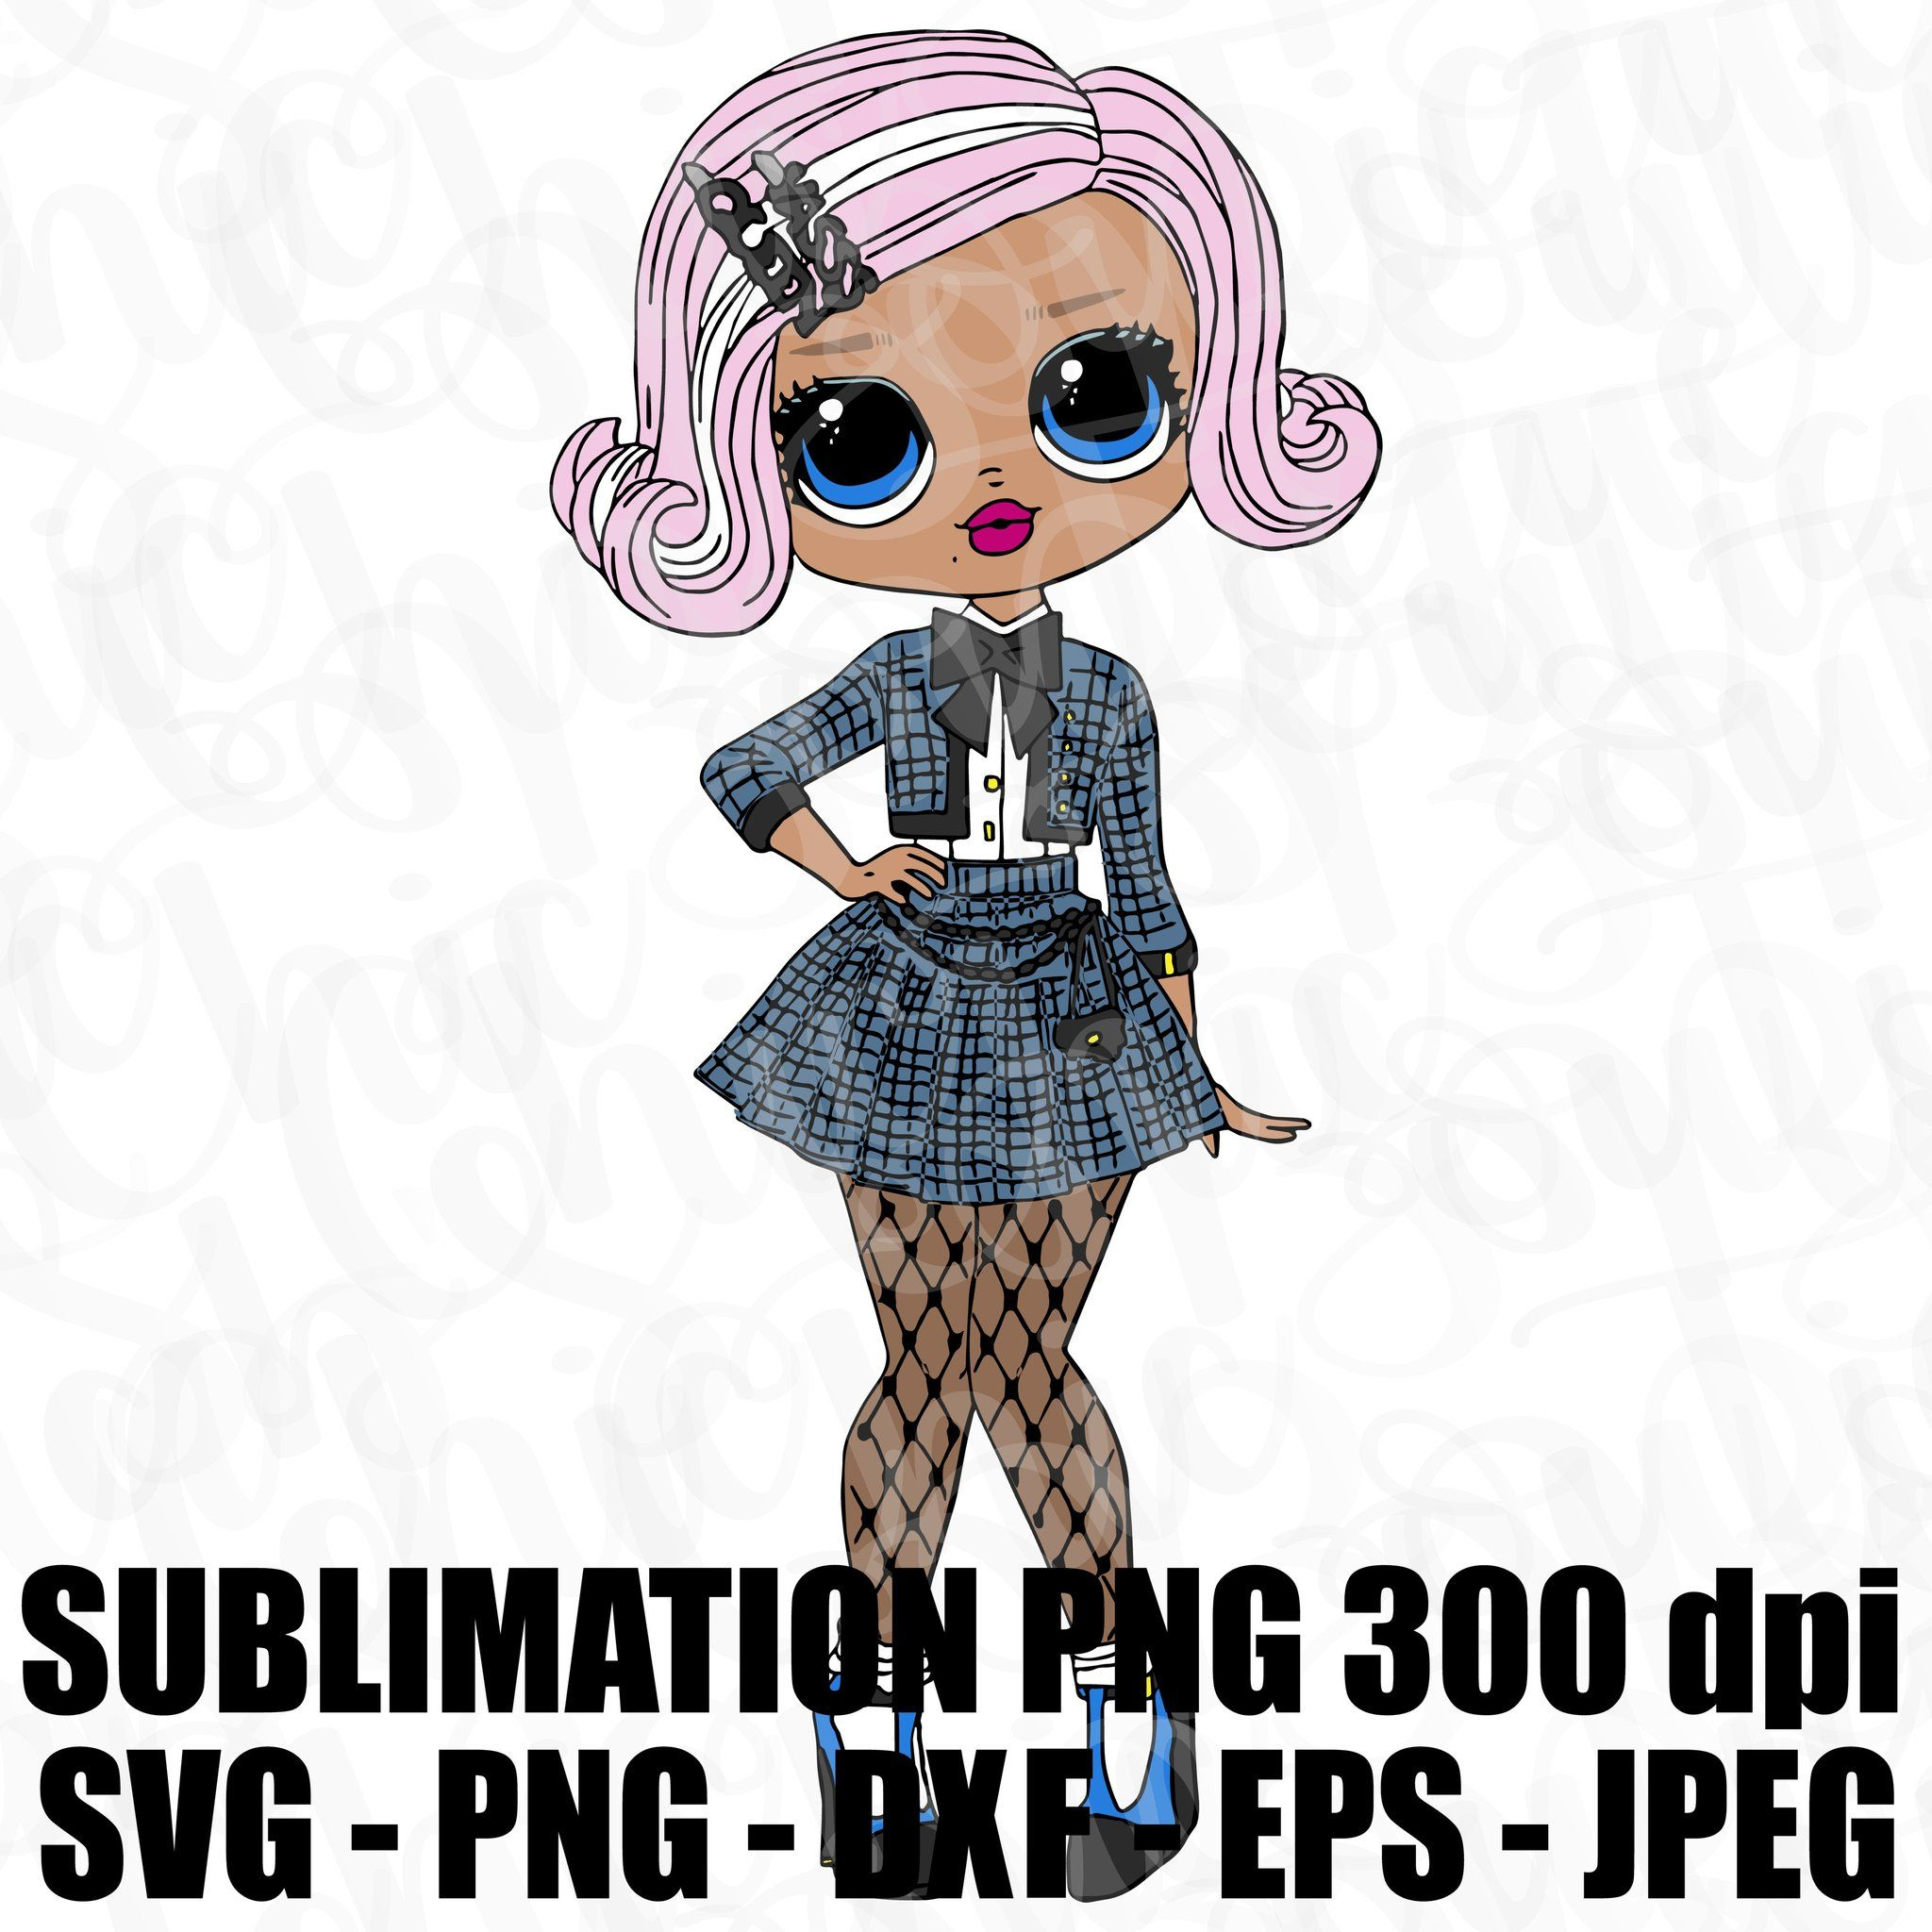 Uptown Girl Omg Lol Surprise Doll Svg Jpeg Png 300 Dpi Dxf Eps High Def L O L Sublimation Iron On Design Topper O M G Series 2 In 2020 Doll Drawing Lol Dolls Lol